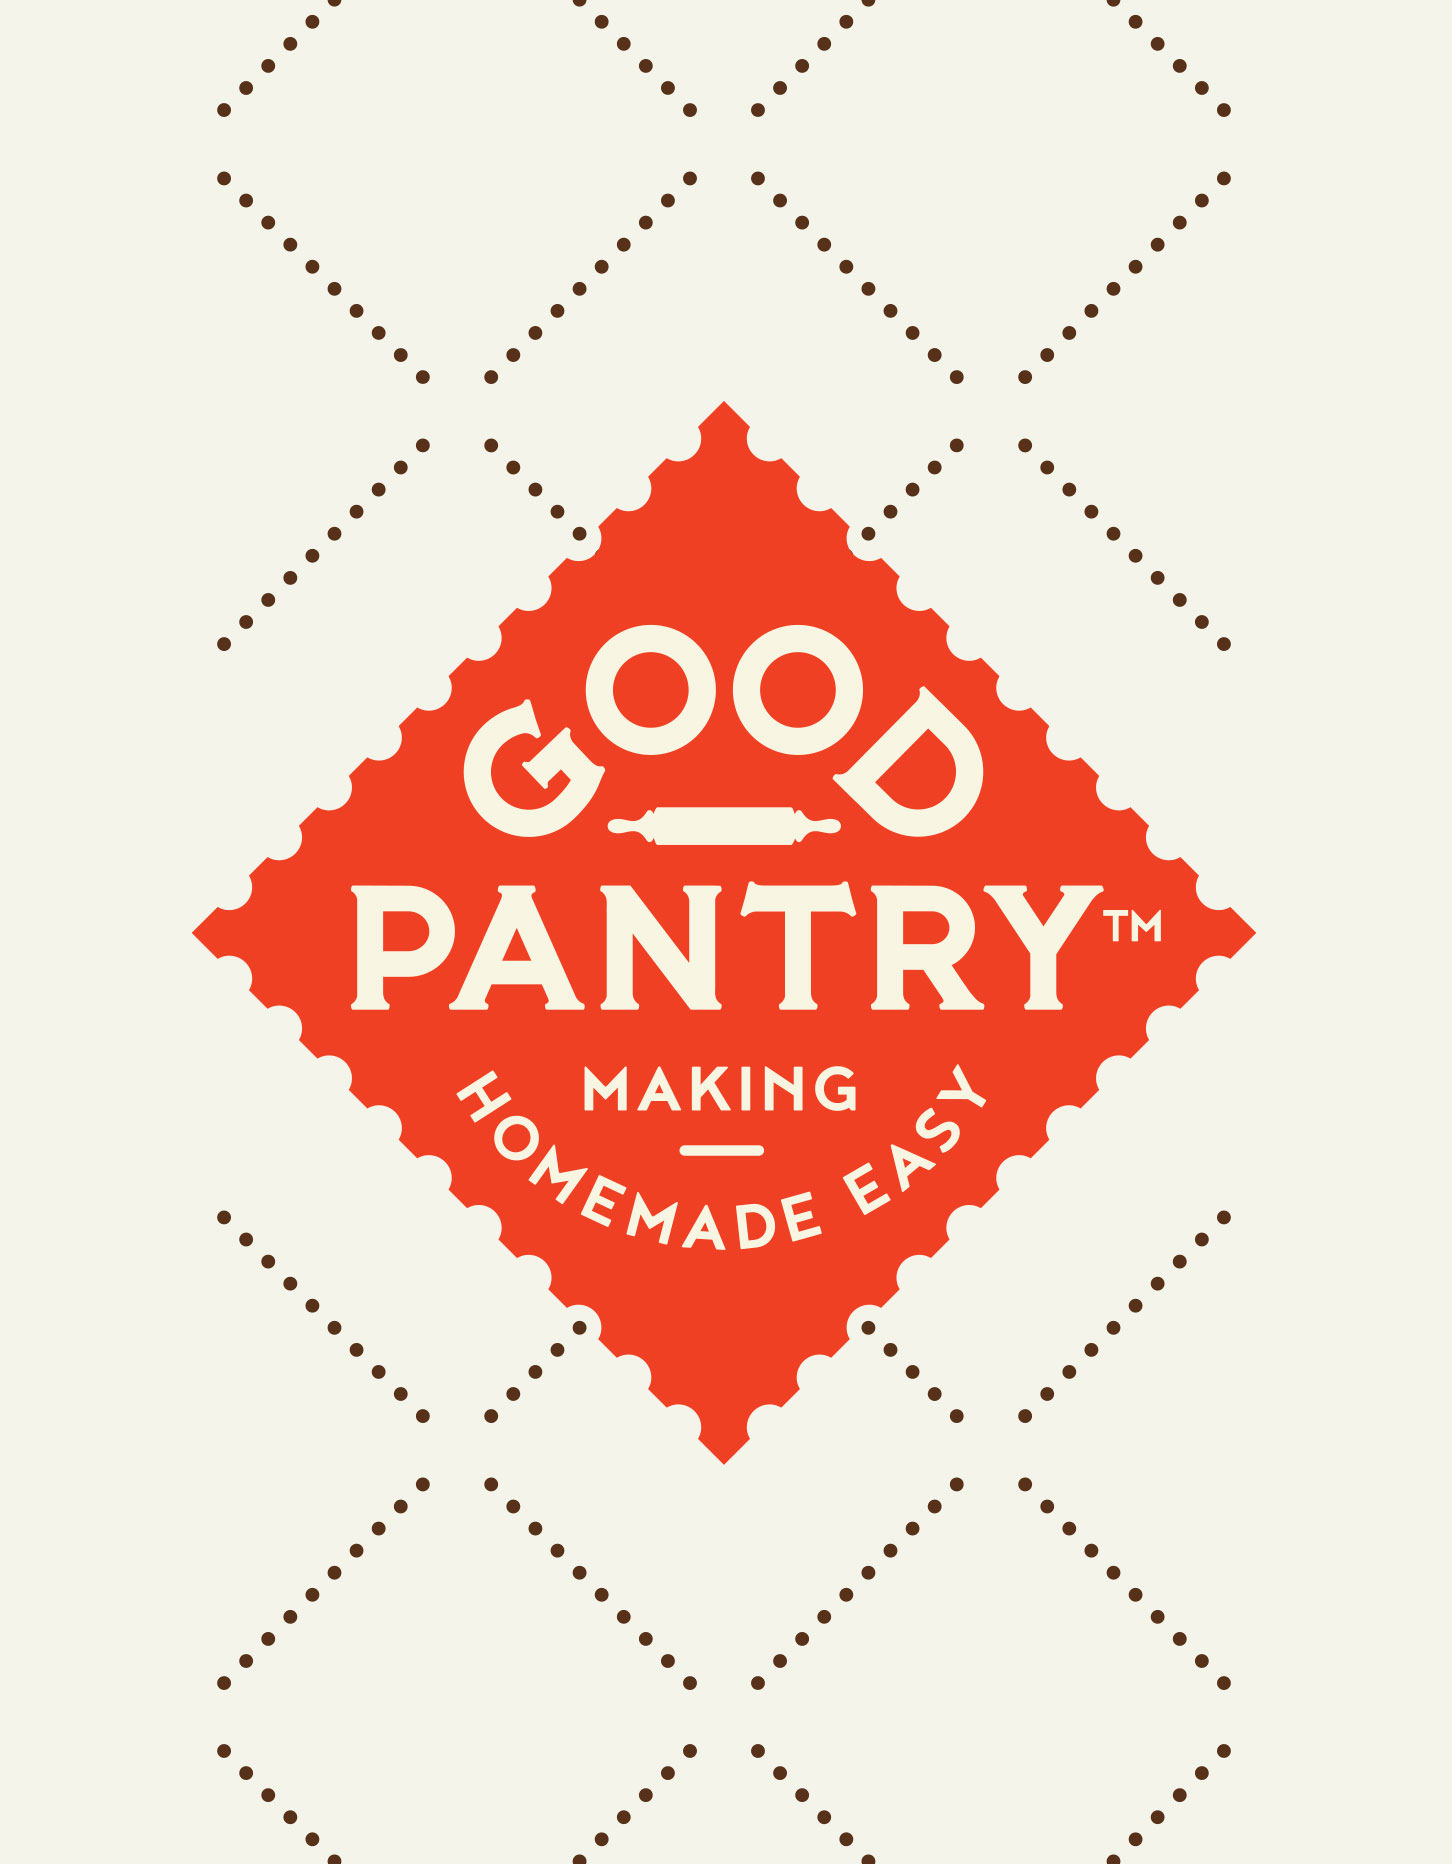 Chad Roberts Design Ltd. Good Pantry Brand Identity Design